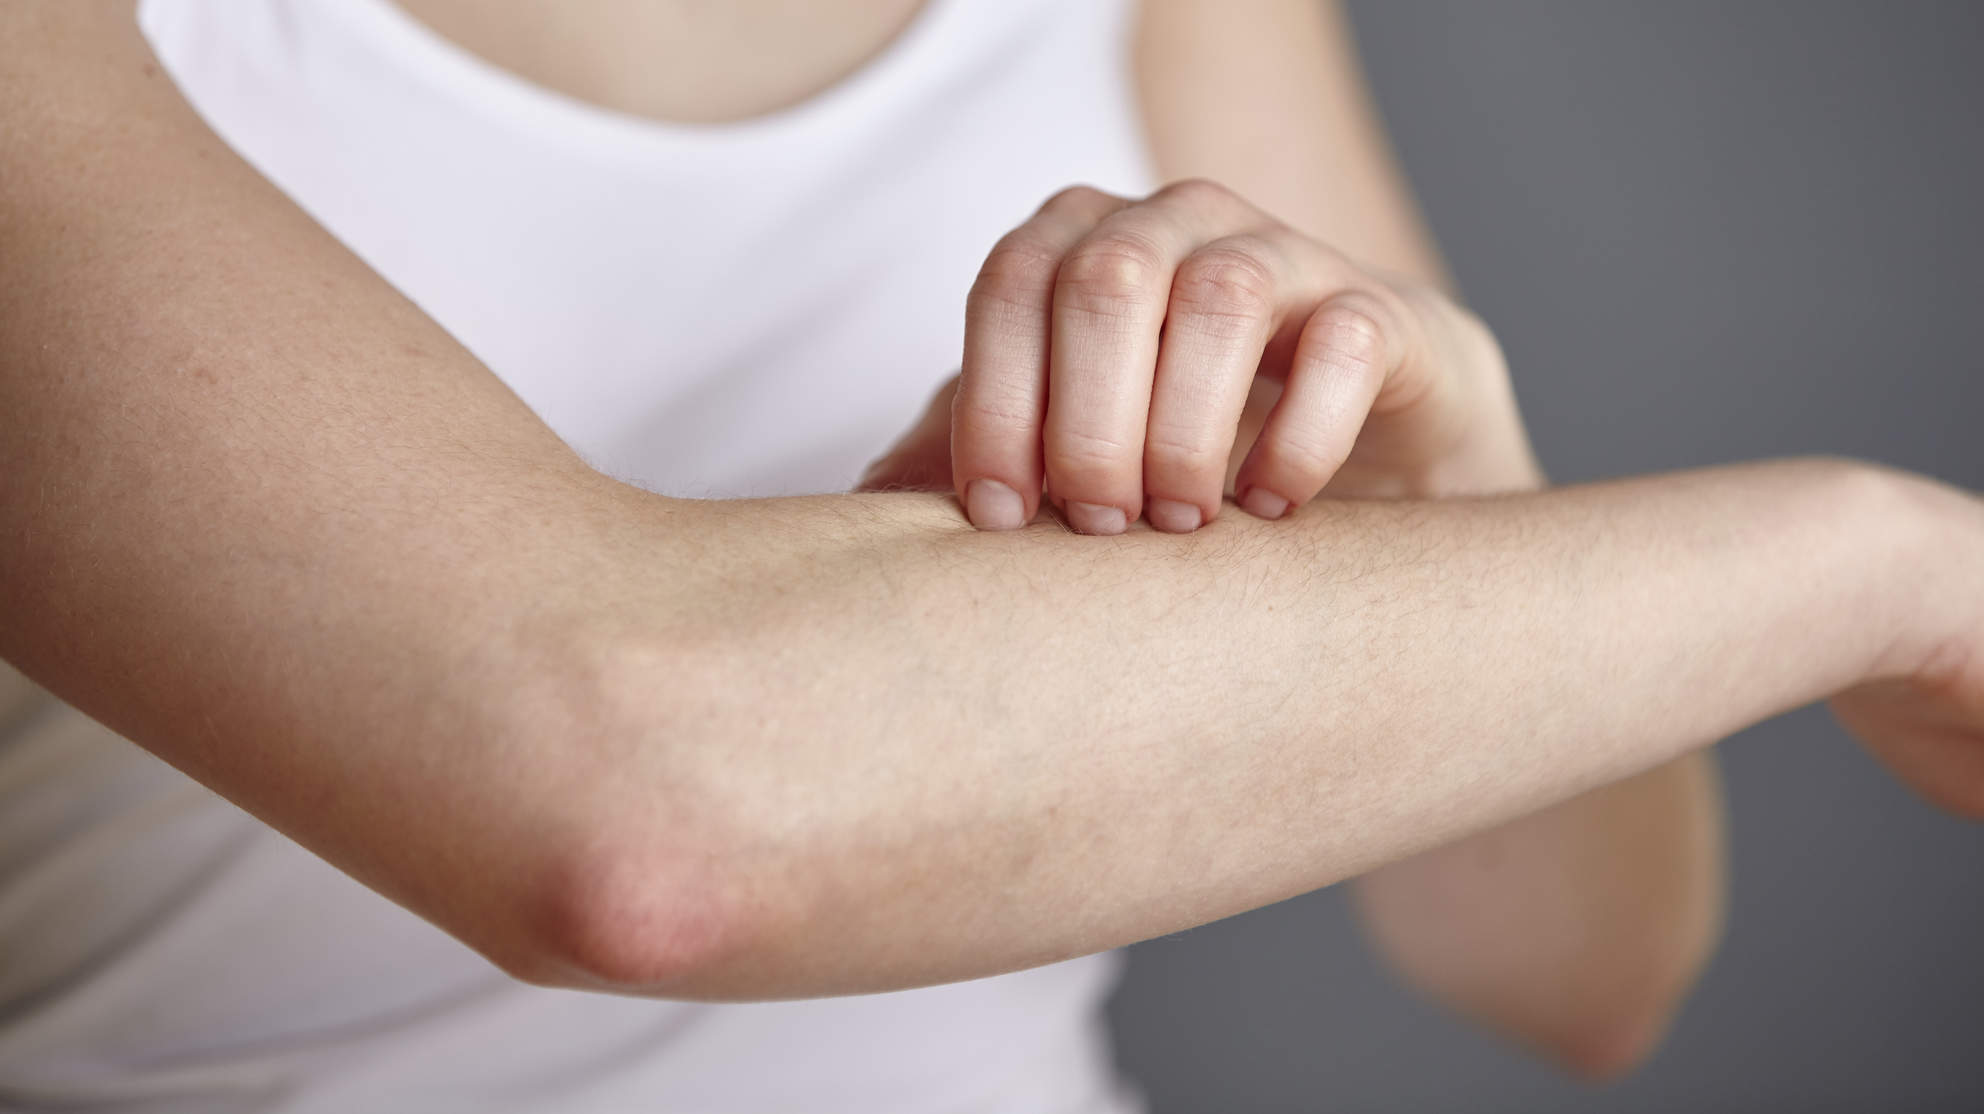 eczema-itch-scratch-skin-arm